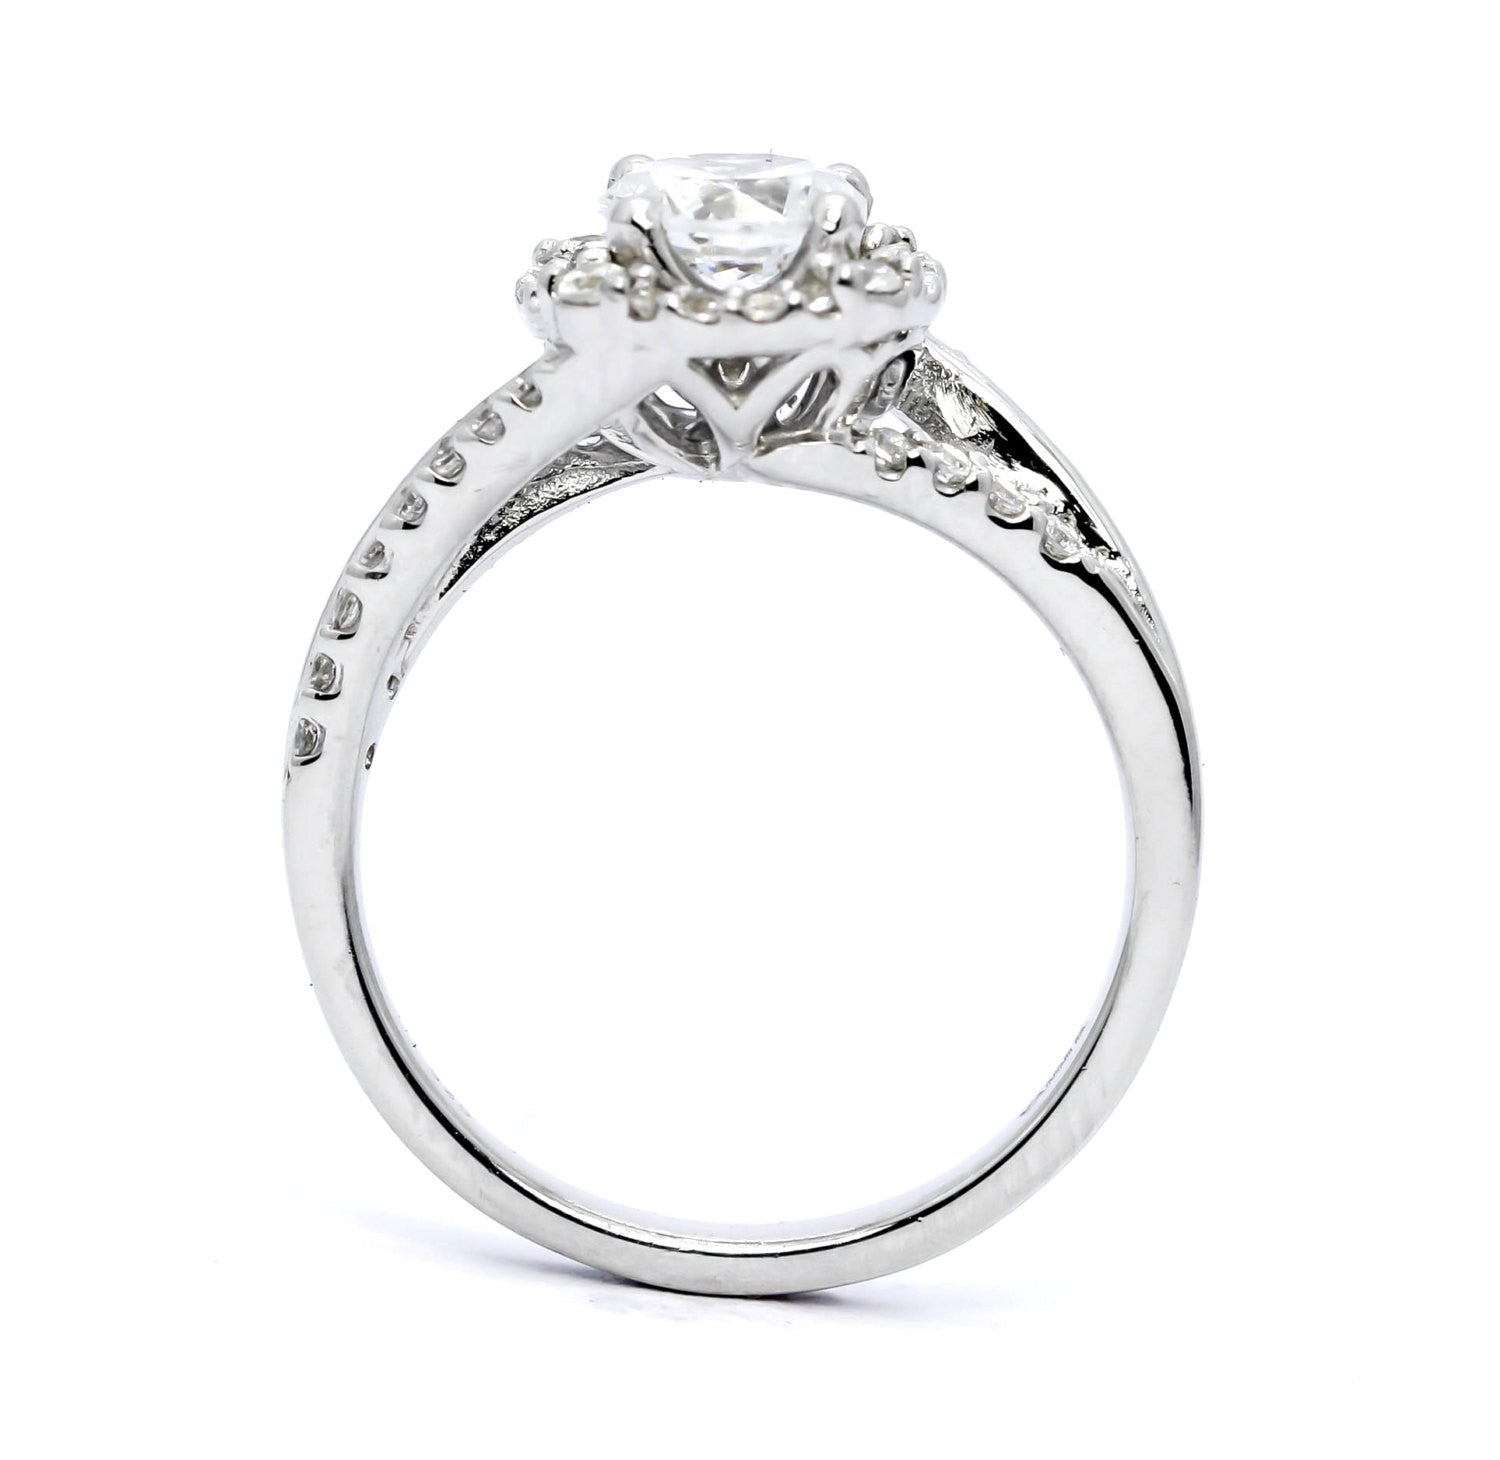 Moissanite & Diamond Square Halo Engagement Ring, Unique With 1 Carat Forever Brilliant Moissanite Split Shank With Diamond Accent Stones - FBY11619